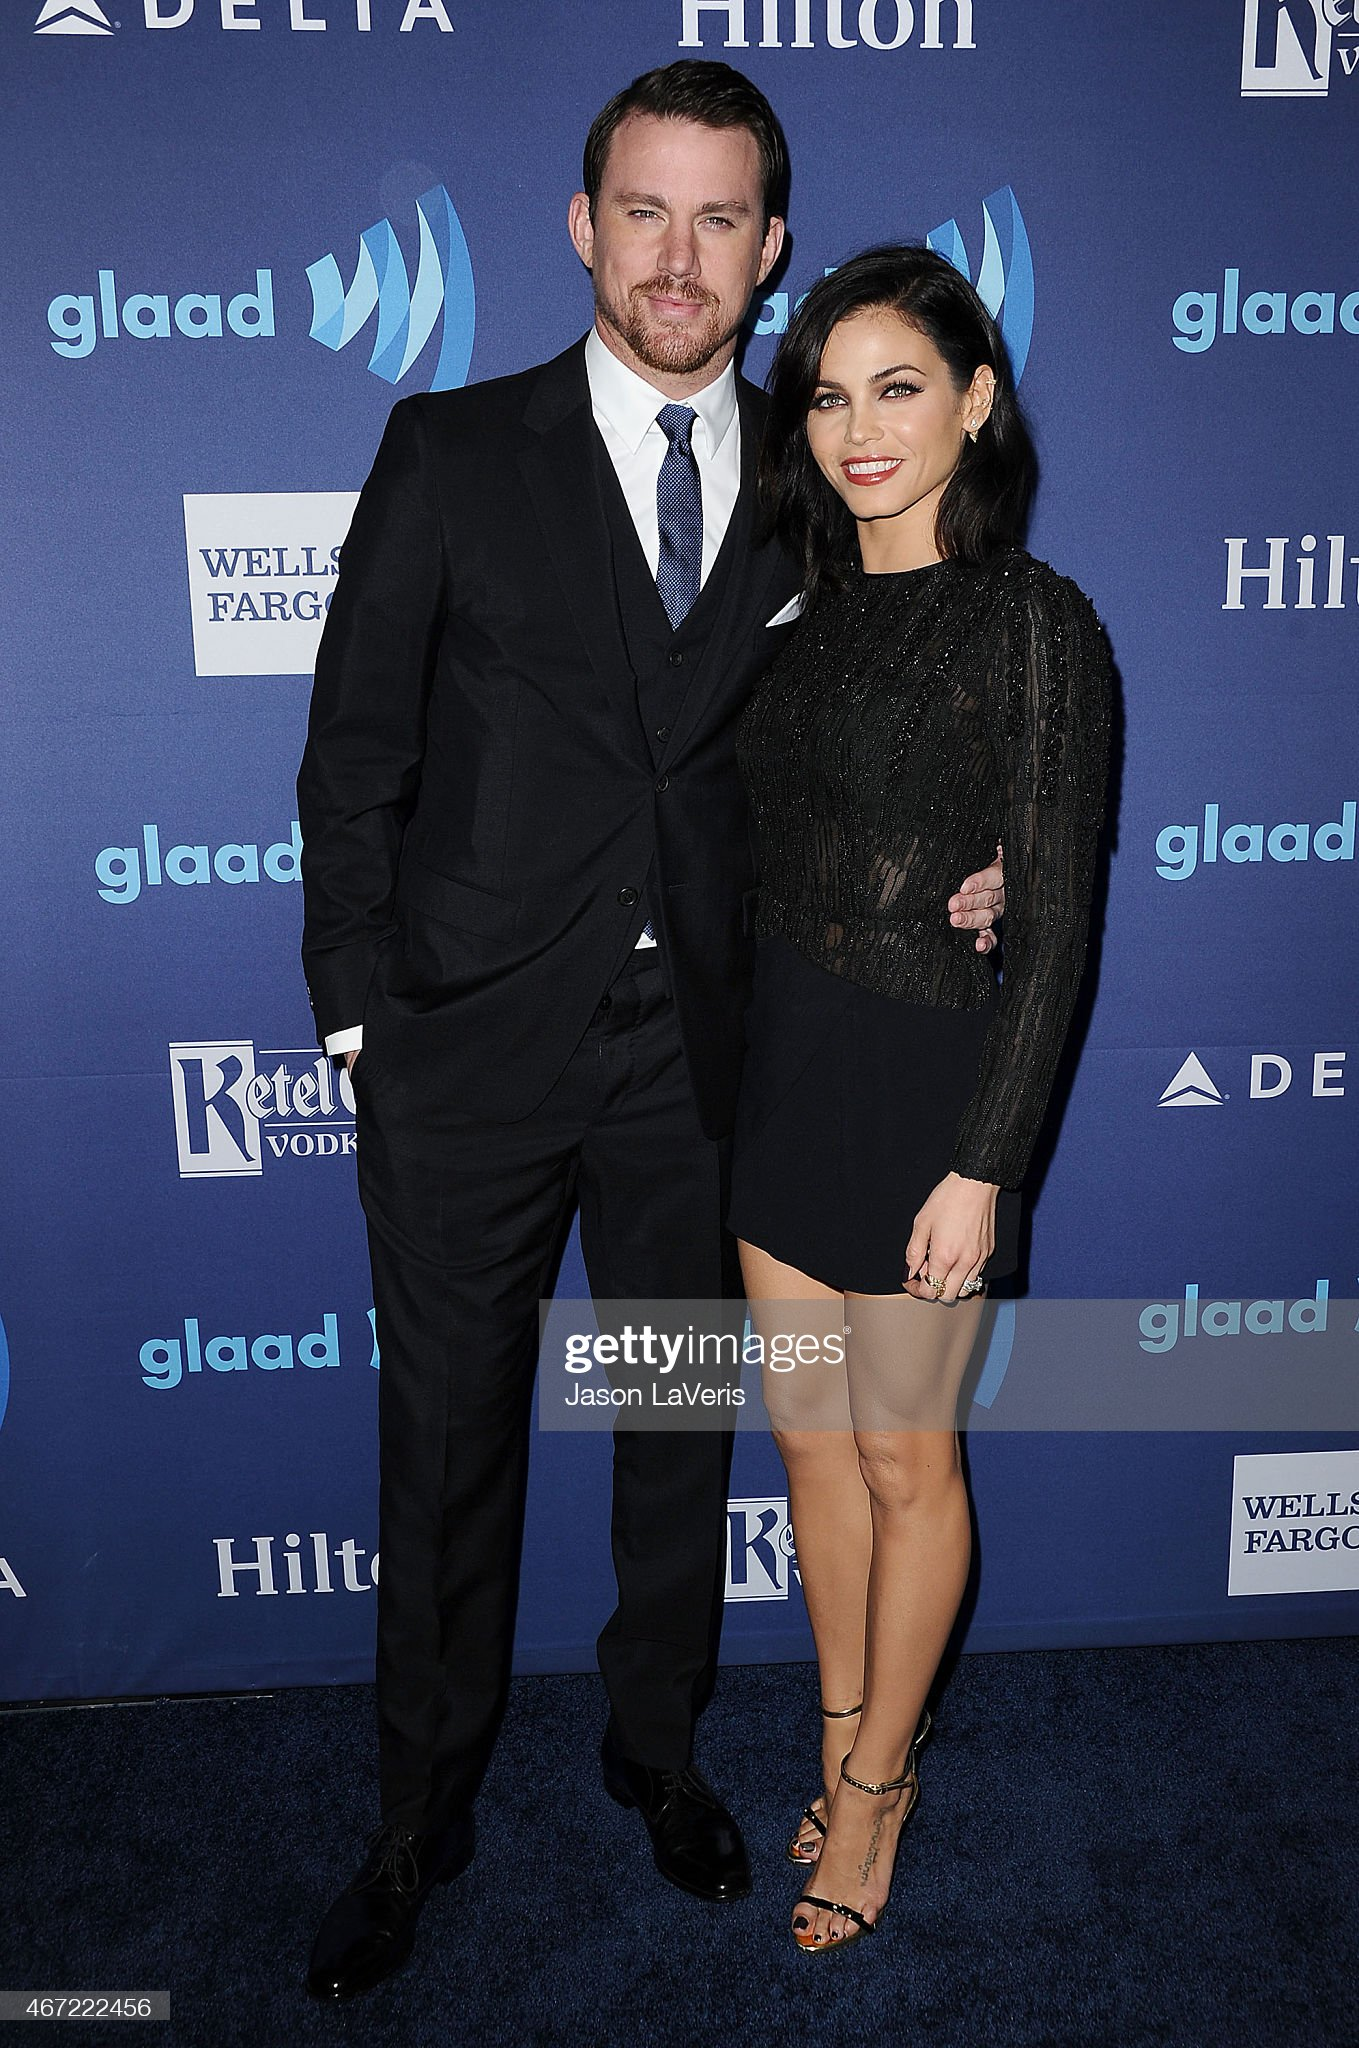 ¿Cuánto mide Jenna Dewan? - Altura - Real height Actor-channing-tatum-and-actress-jenna-dewan-tatum-attend-the-26th-picture-id467222456?s=2048x2048